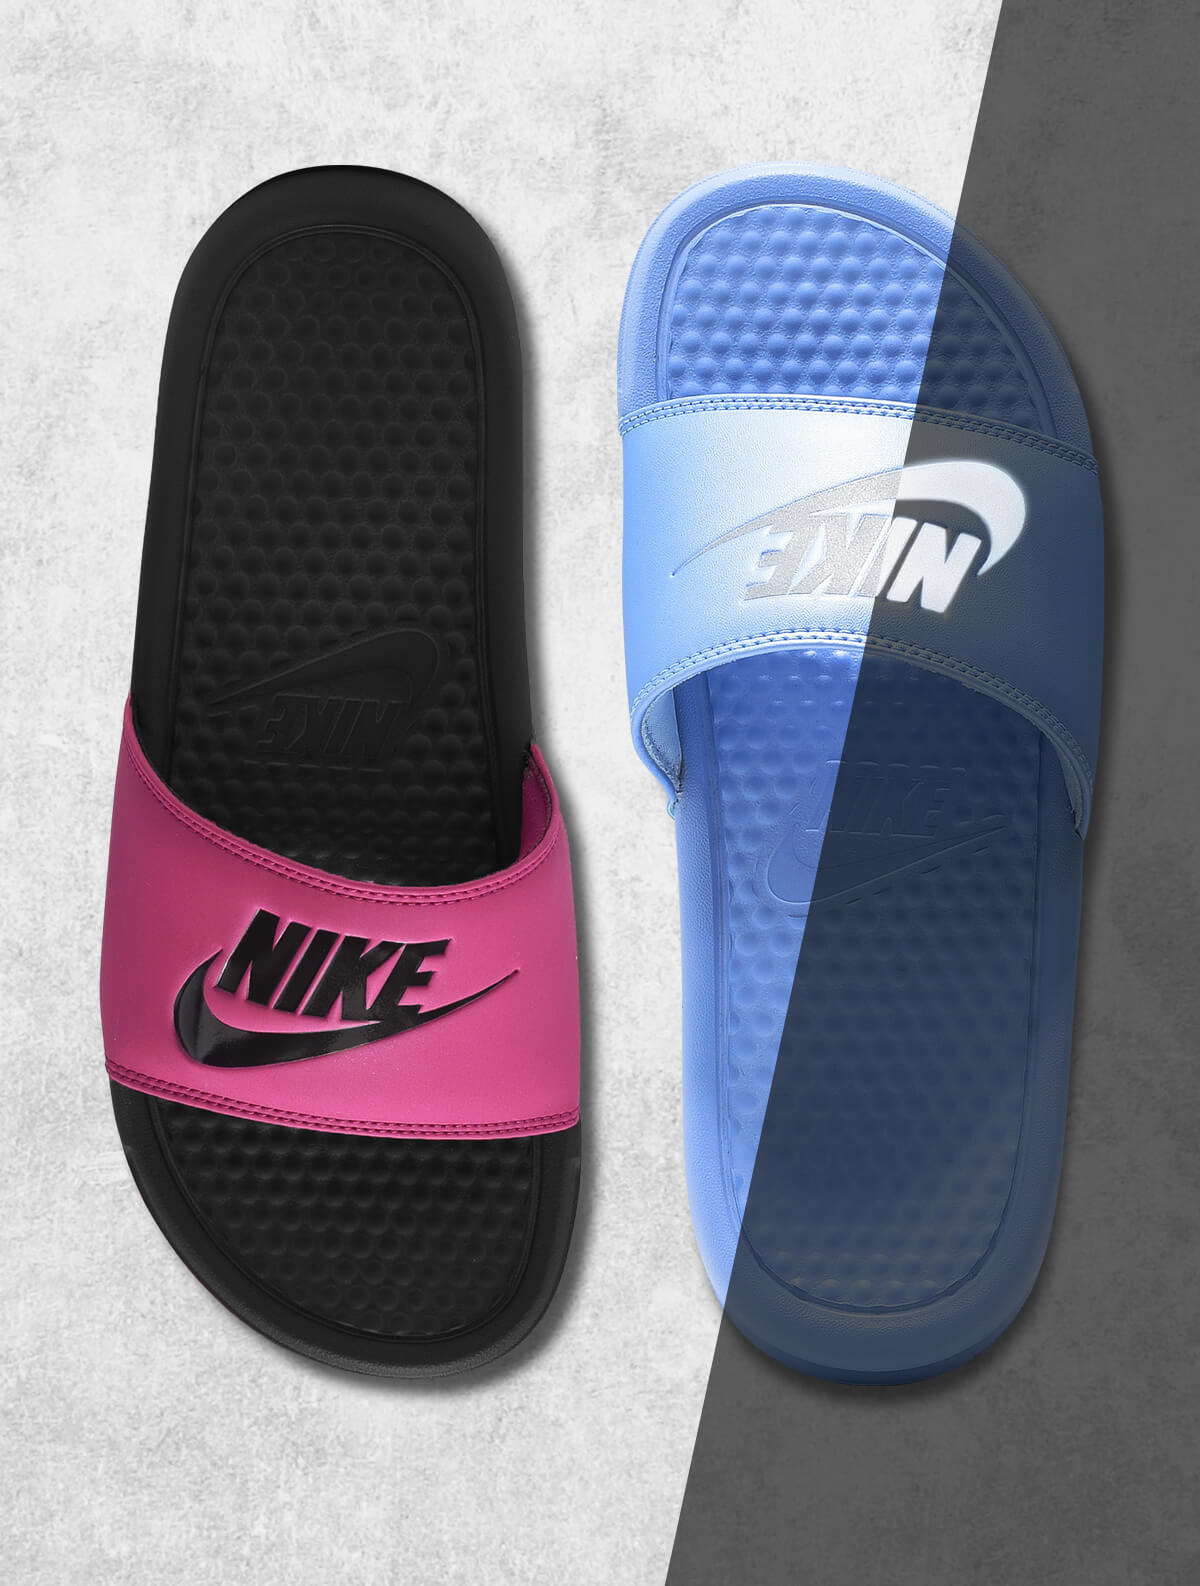 57d8cac019adbe NEW ARRIVAL SLIDES FROM NIKE SB   MORE - SHOP SLIDES   SANDALS